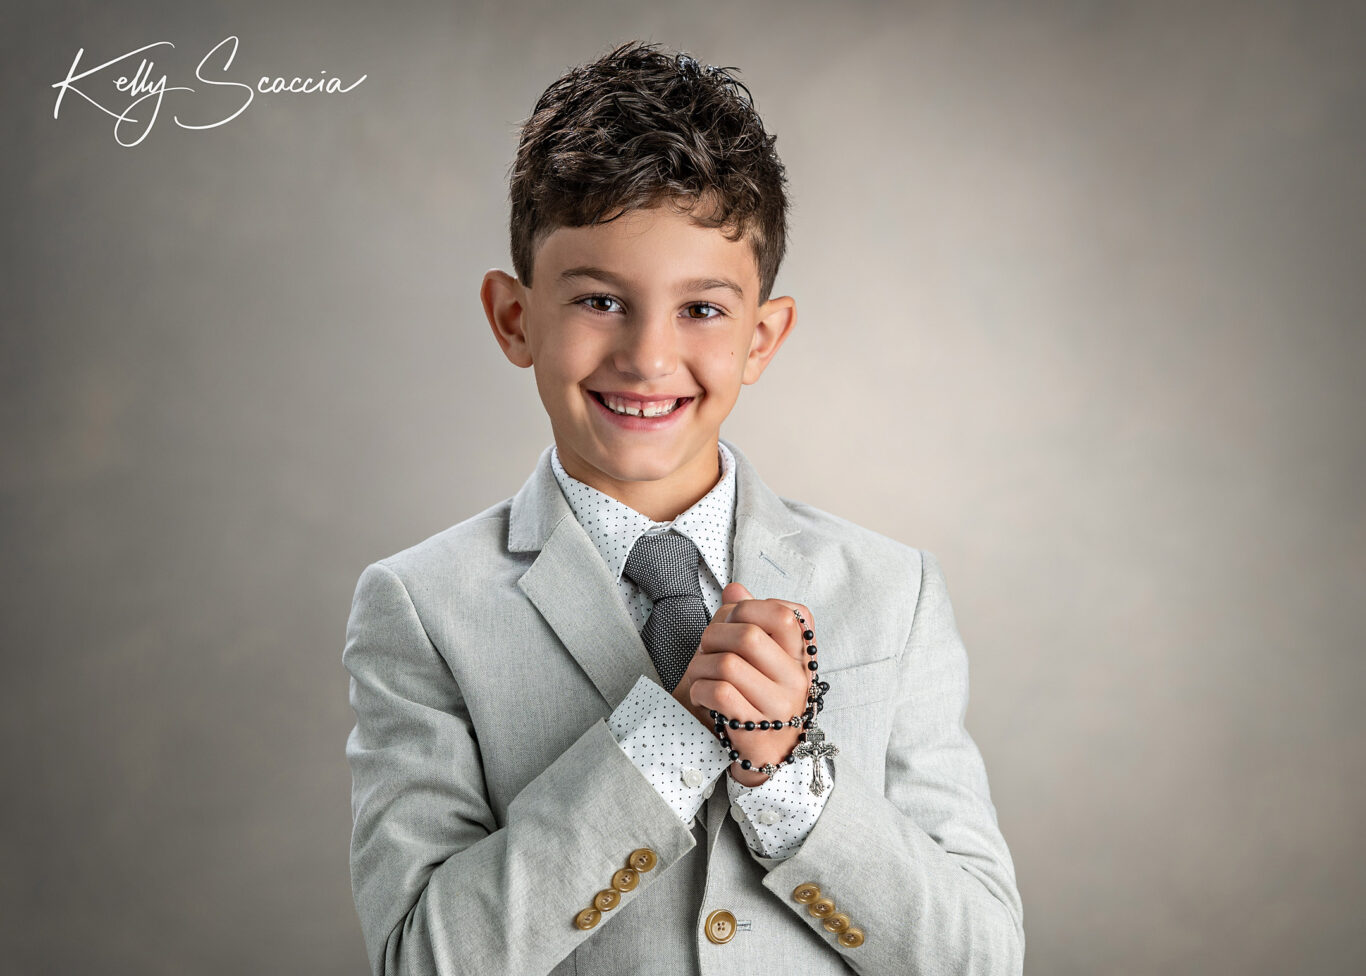 Studio communion boy portrait wearing light, gray suit, holding a rosary, looking at you, smiling